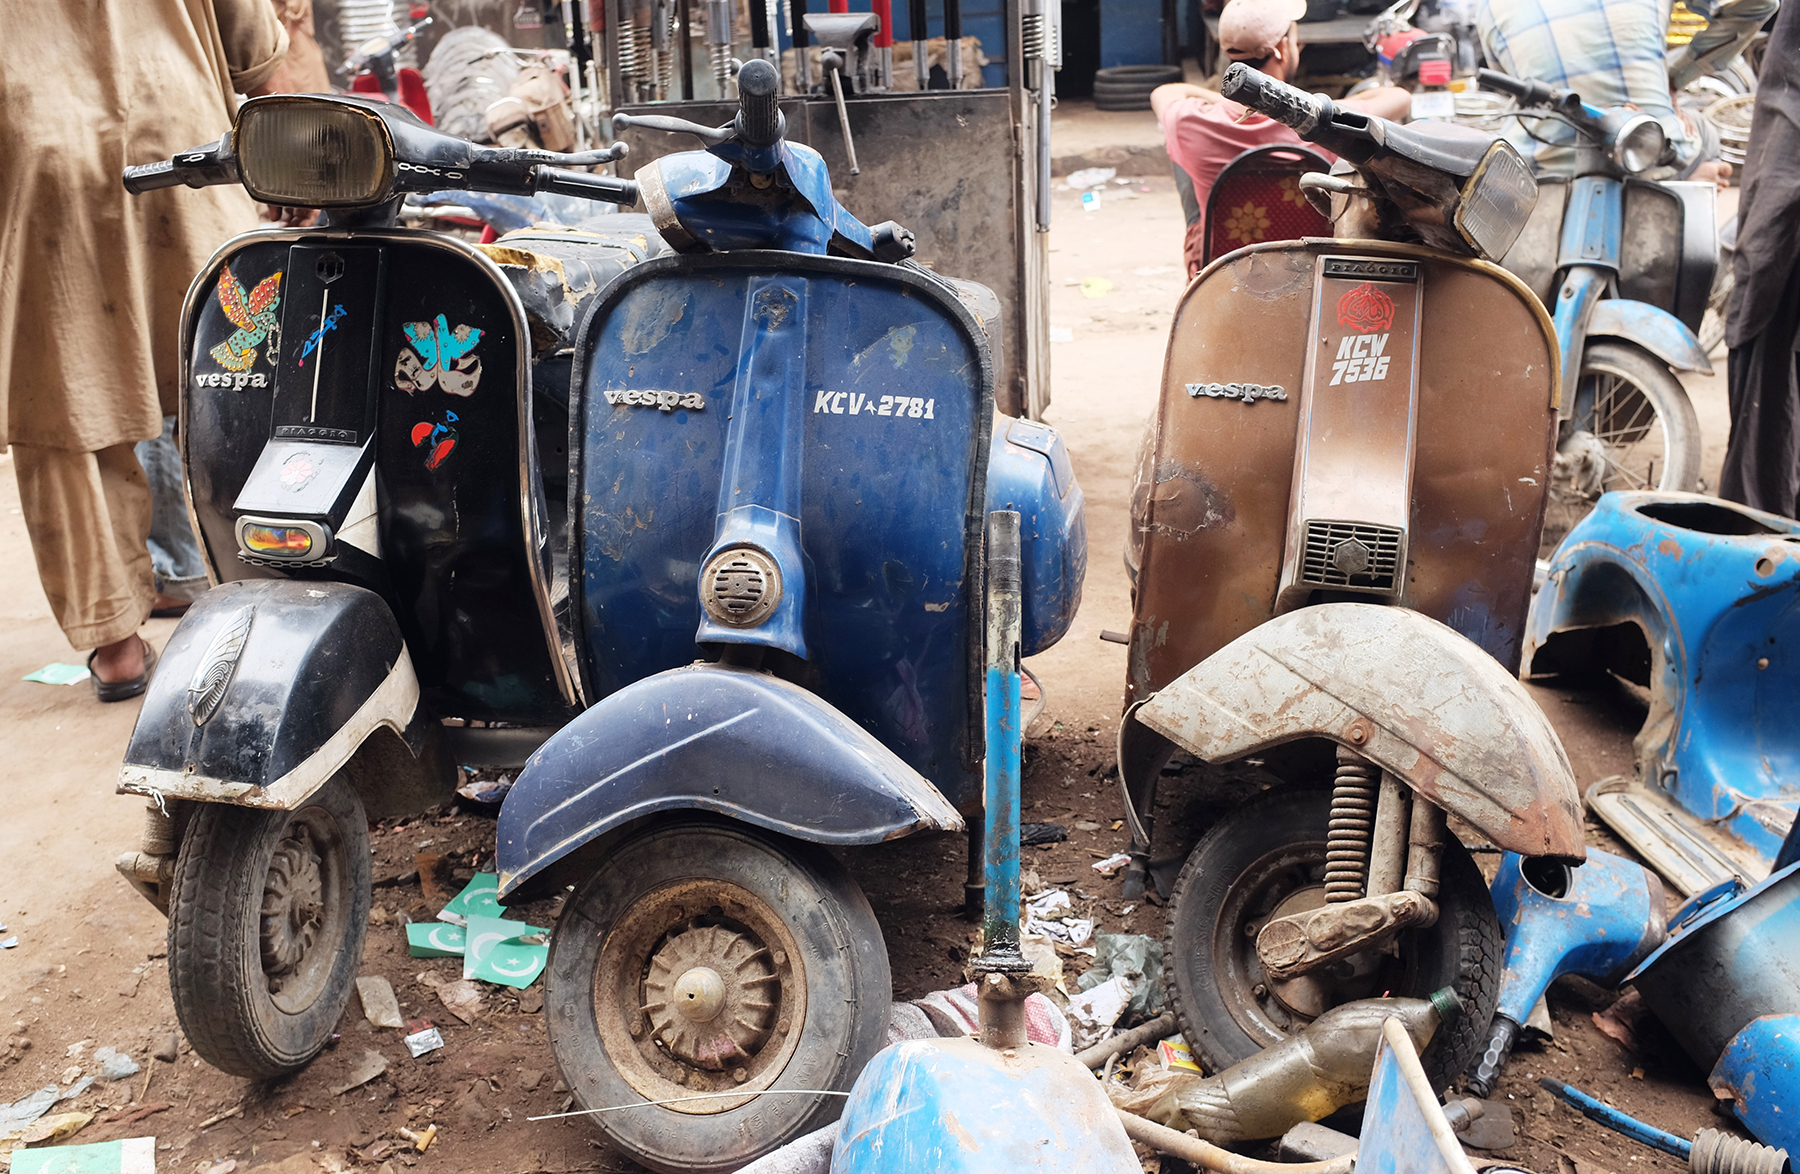 An assortment of colorful Vespas.